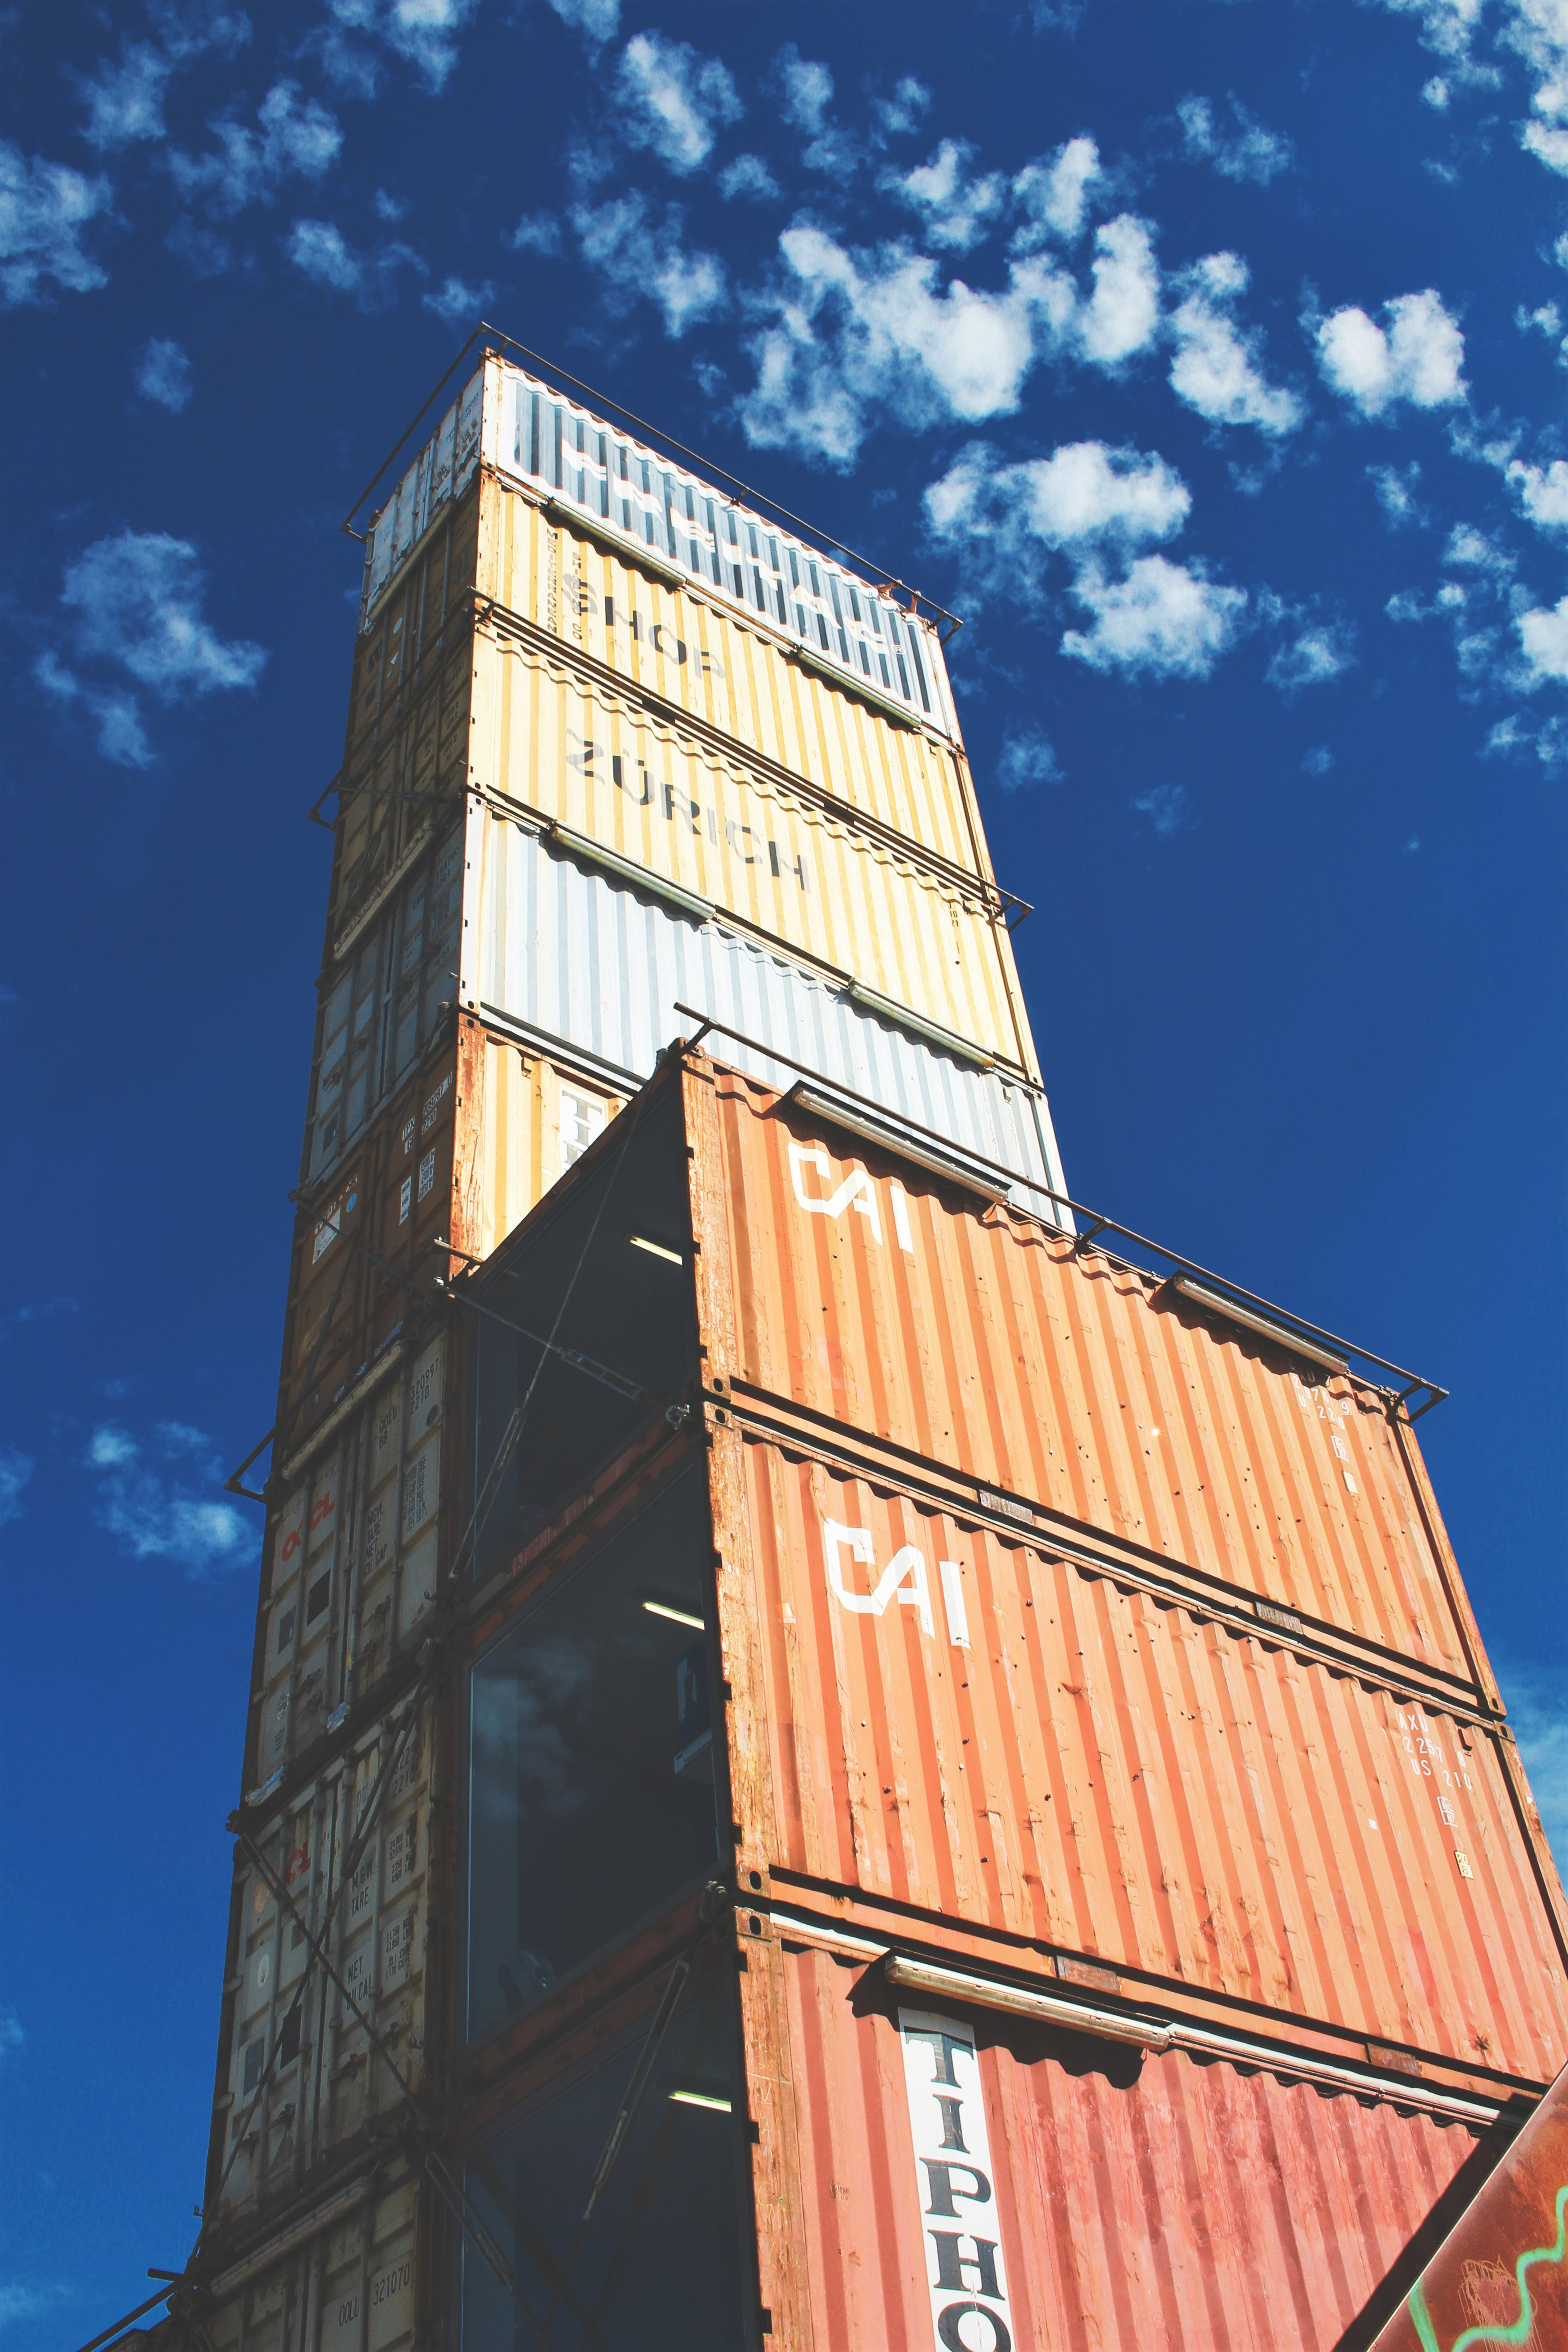 Multi-colored stacked shipping containers that make the Freitag Tower in Zurich